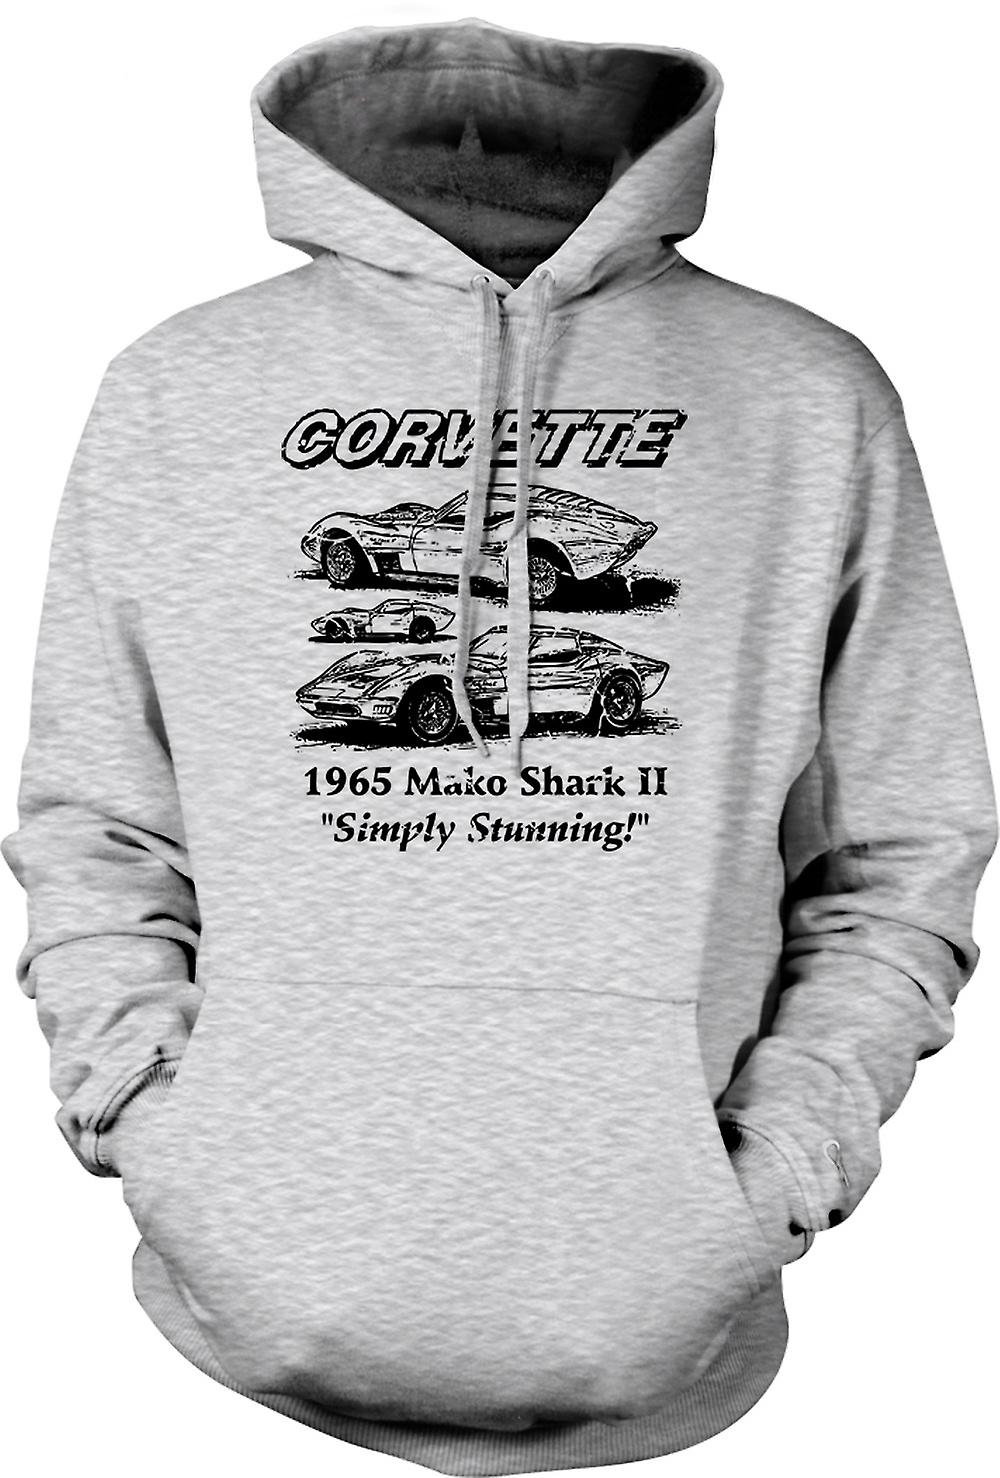 Mens Hoodie - Corvette Mako Shark II - Classic Car